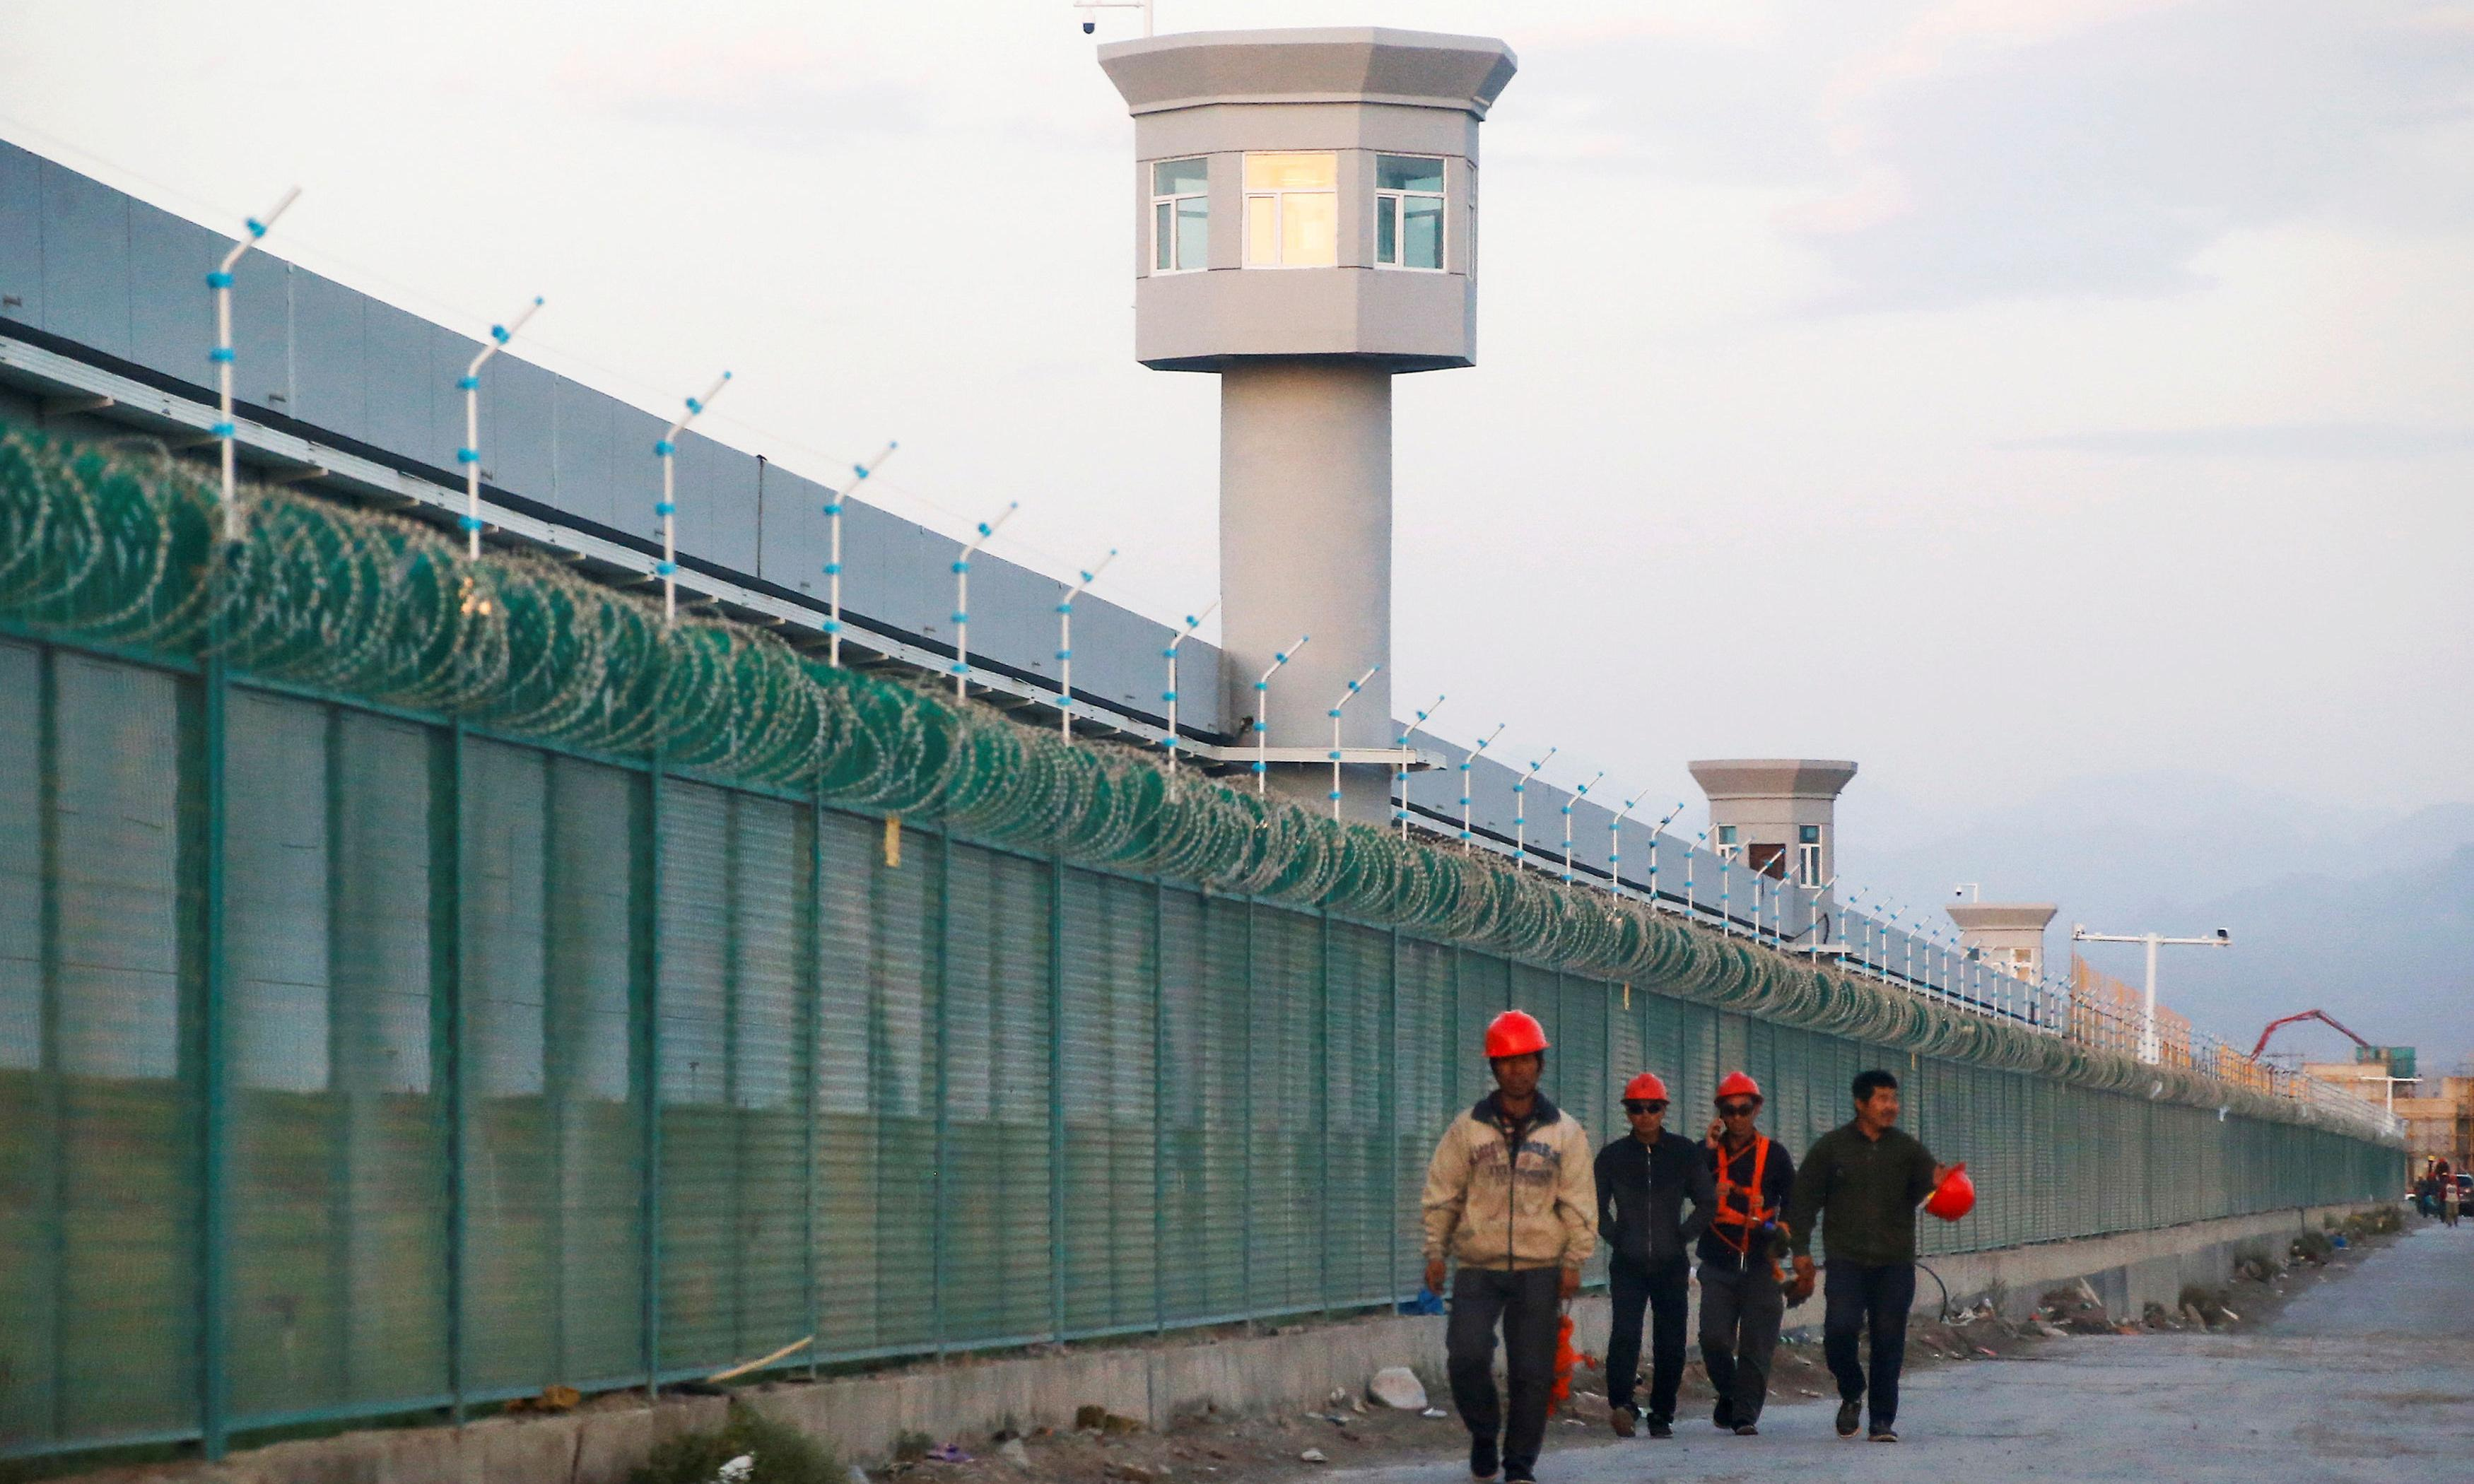 'Allow no escapes': leak exposes reality of China's vast prison camp network